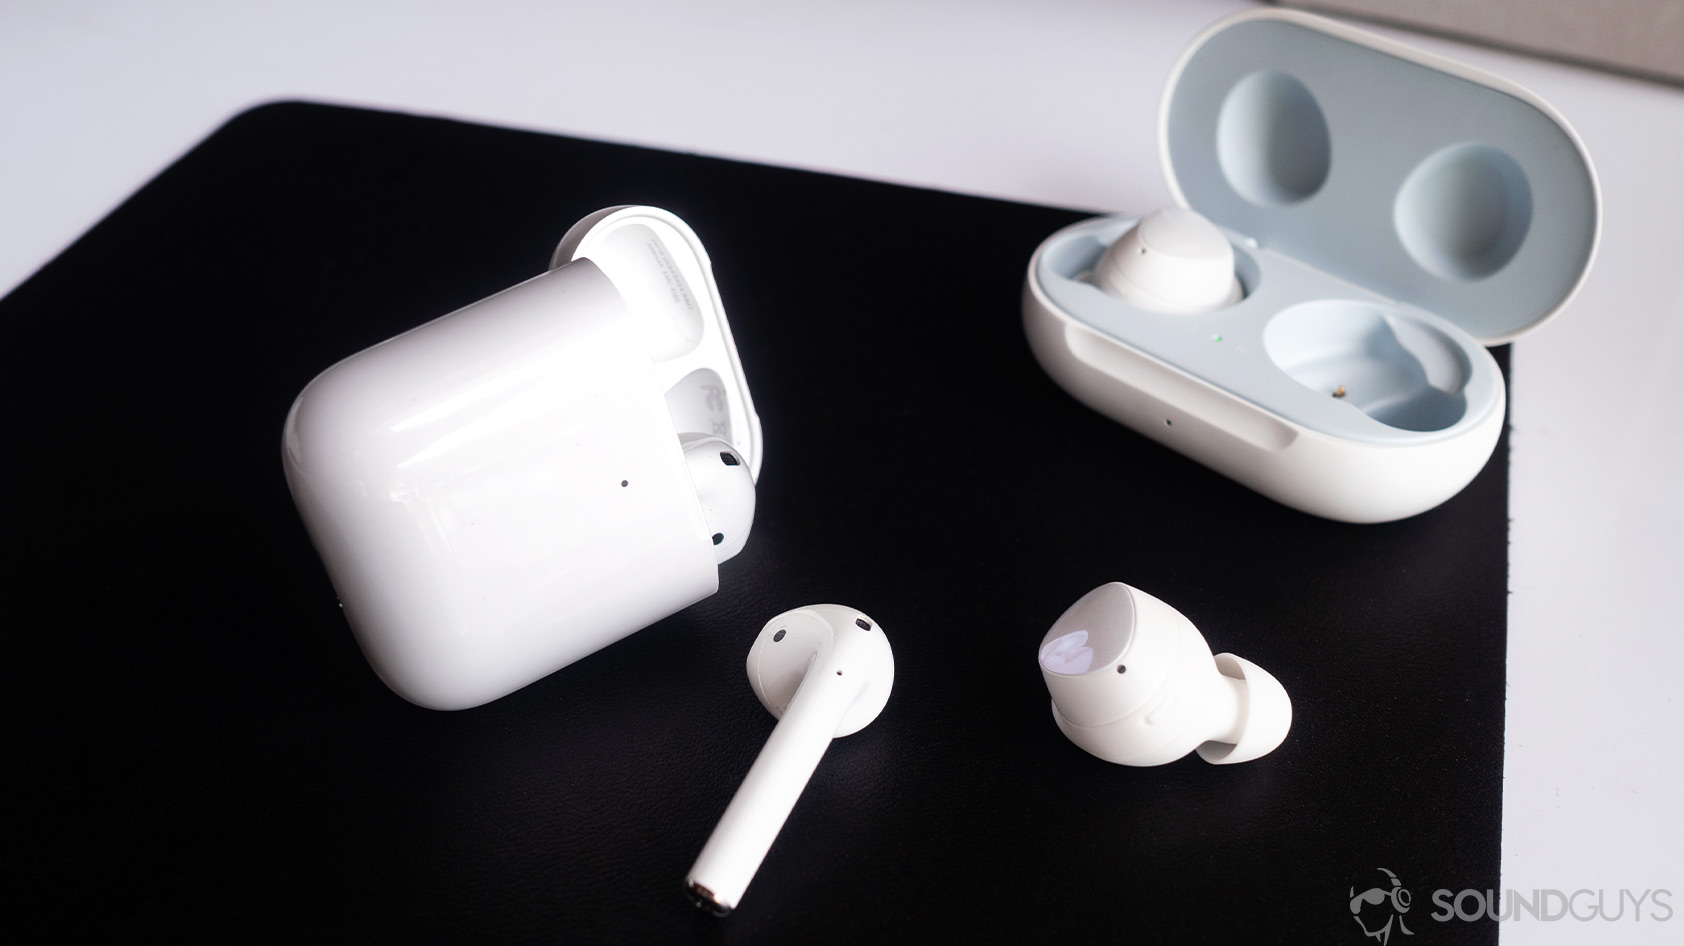 Best AirPods alternatives of 2019 - SoundGuys